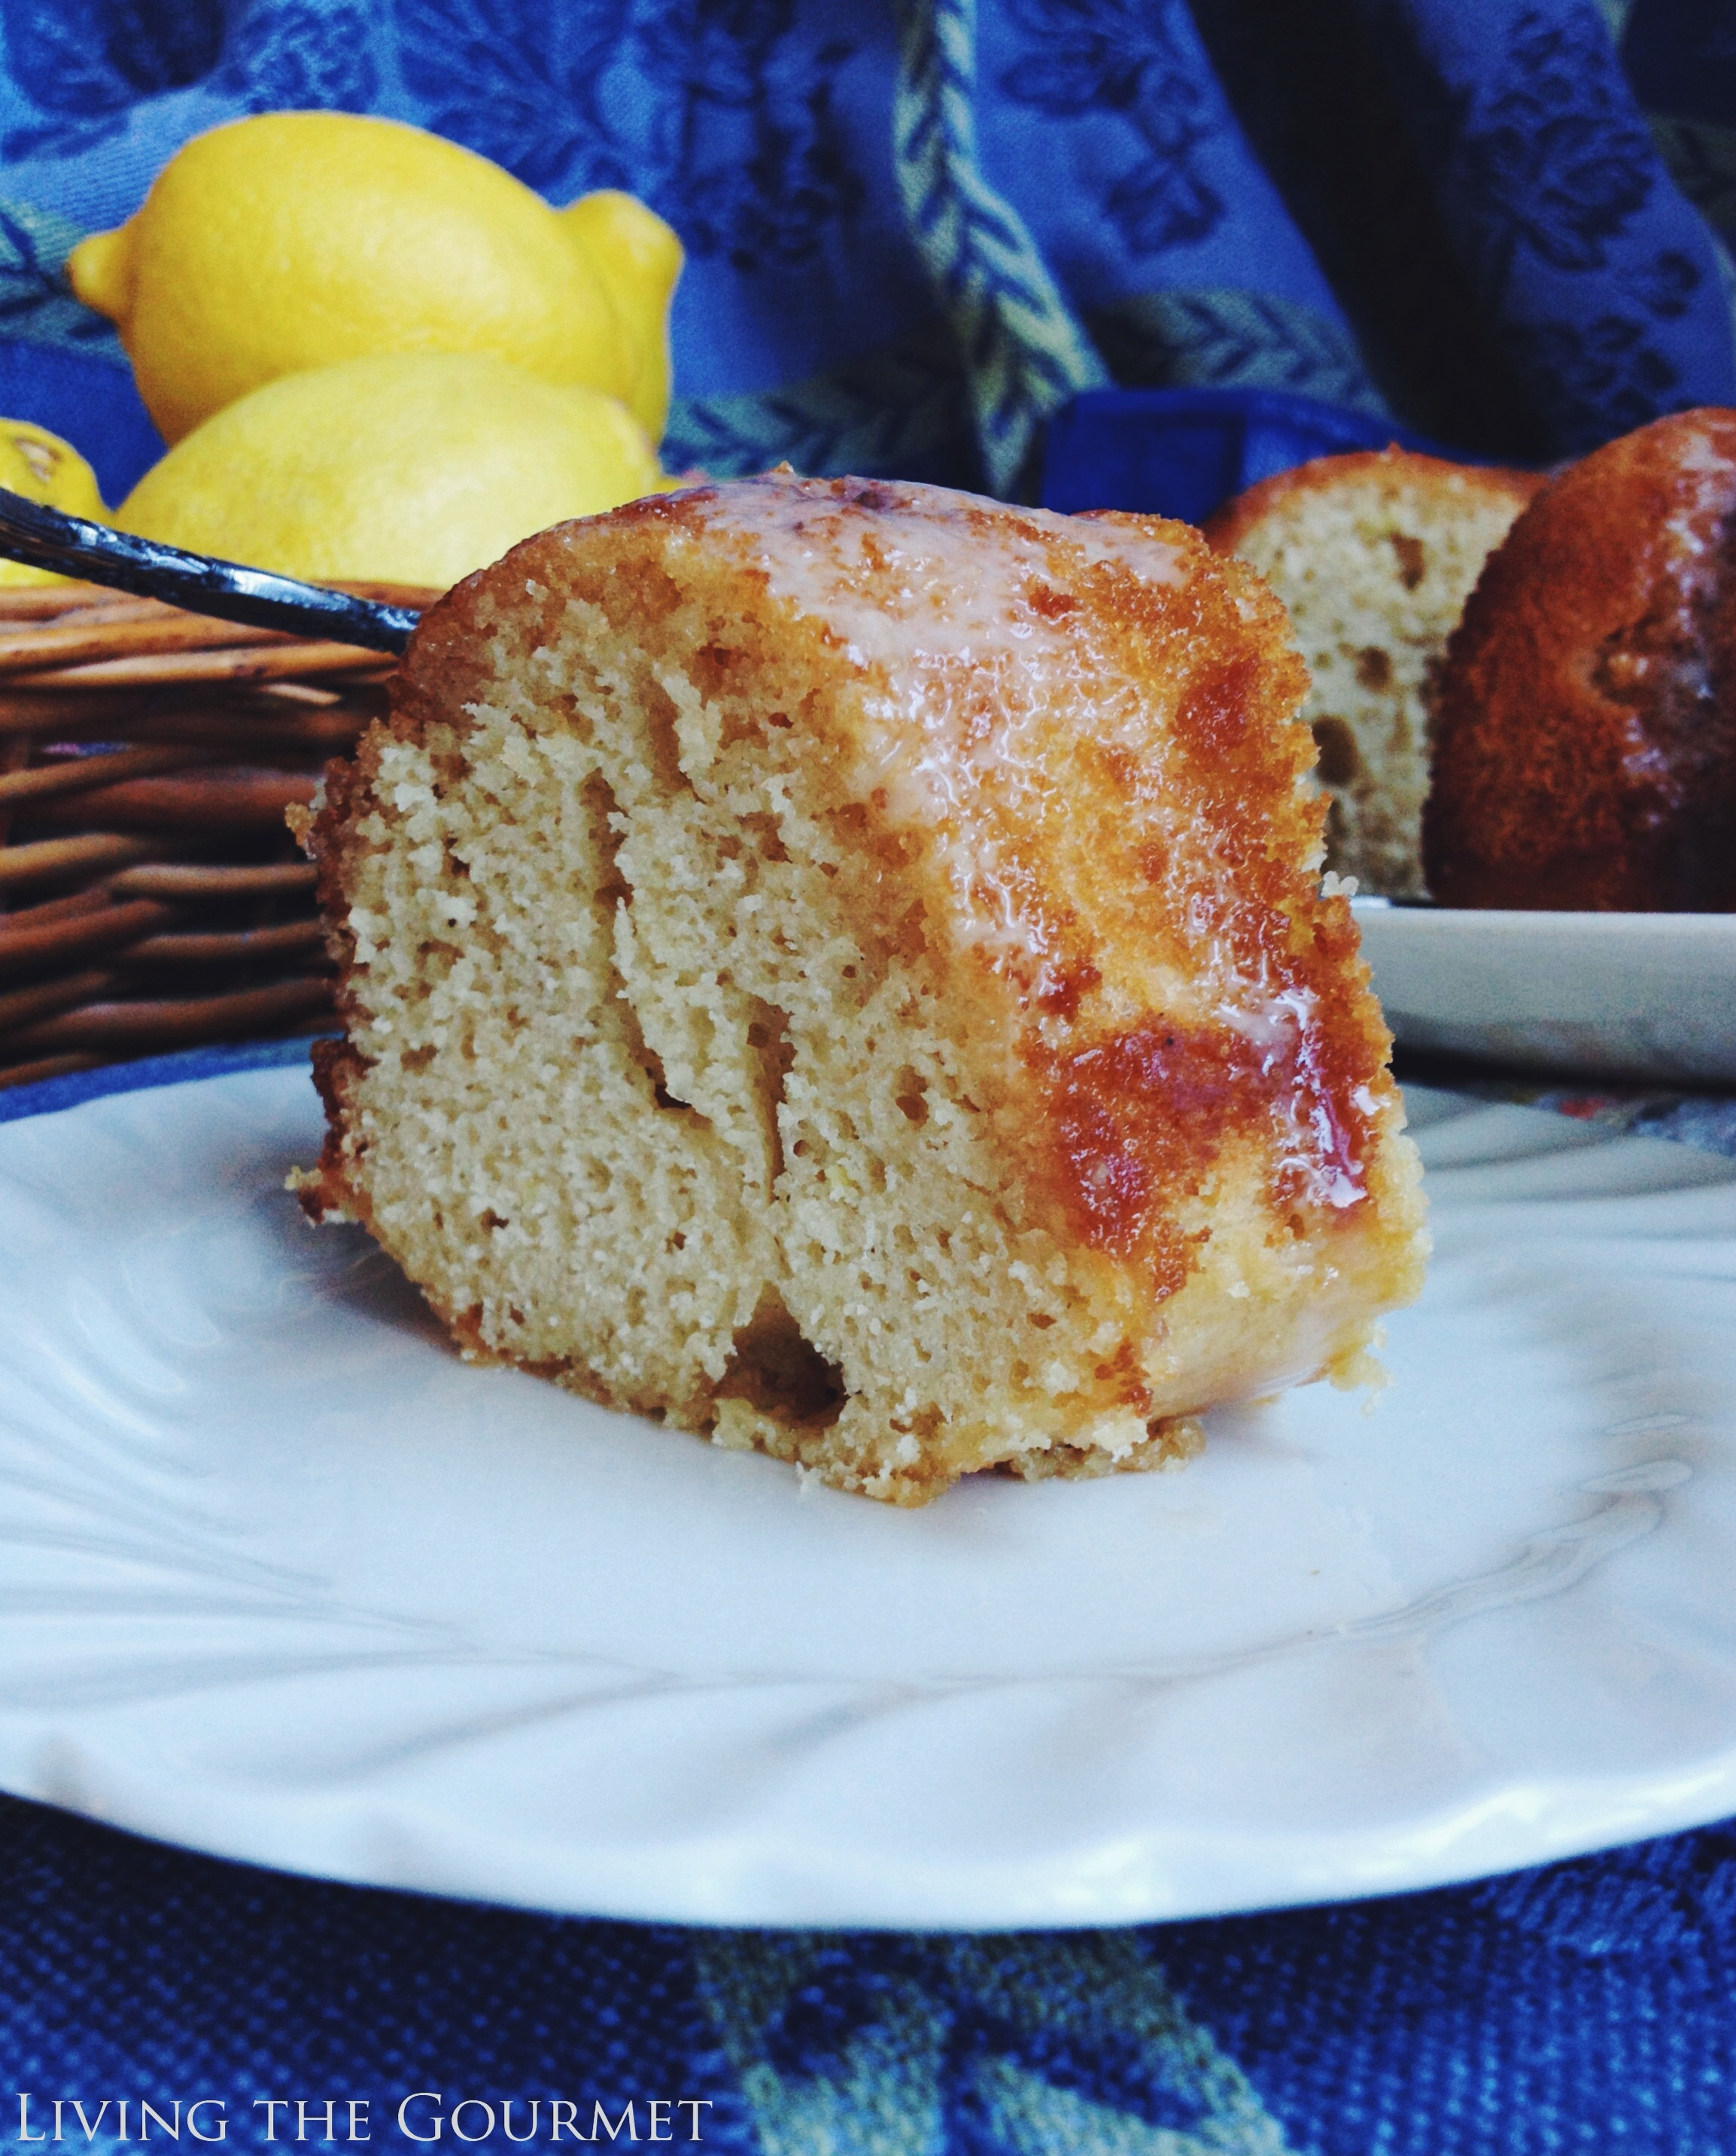 Living the Gourmet: Lemon Rum Bundt #BundtBakers